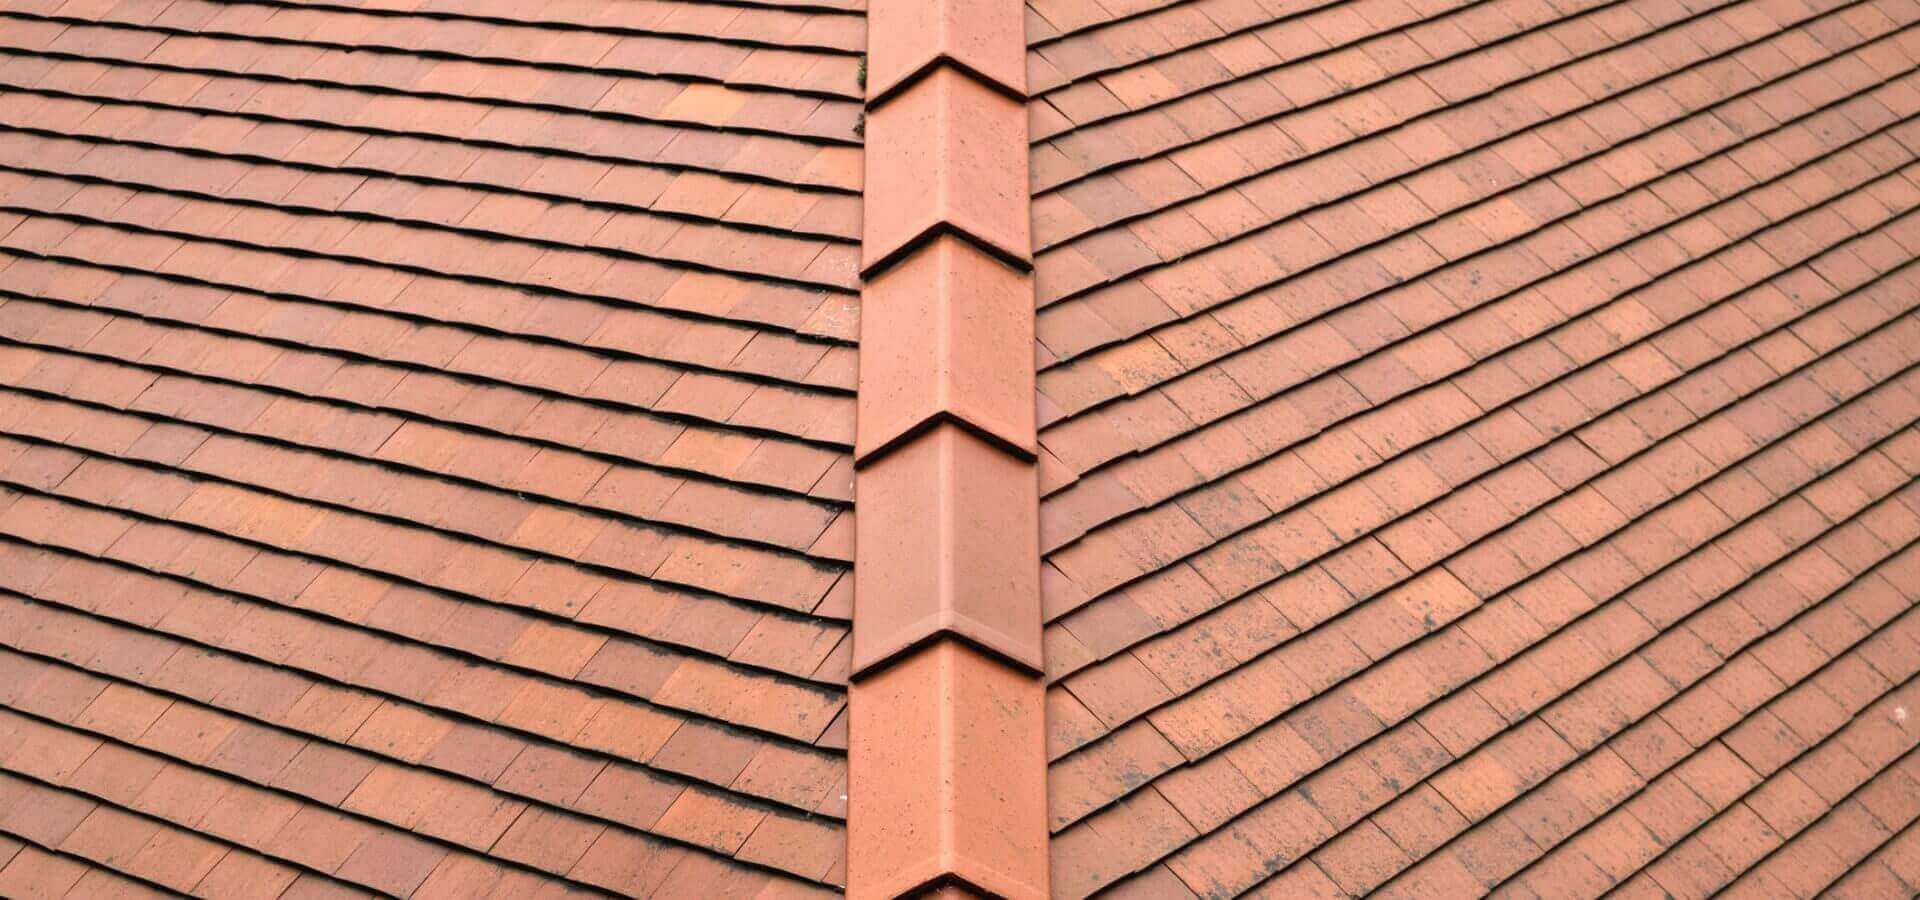 Ridge Cap Repair & Roof Repointing